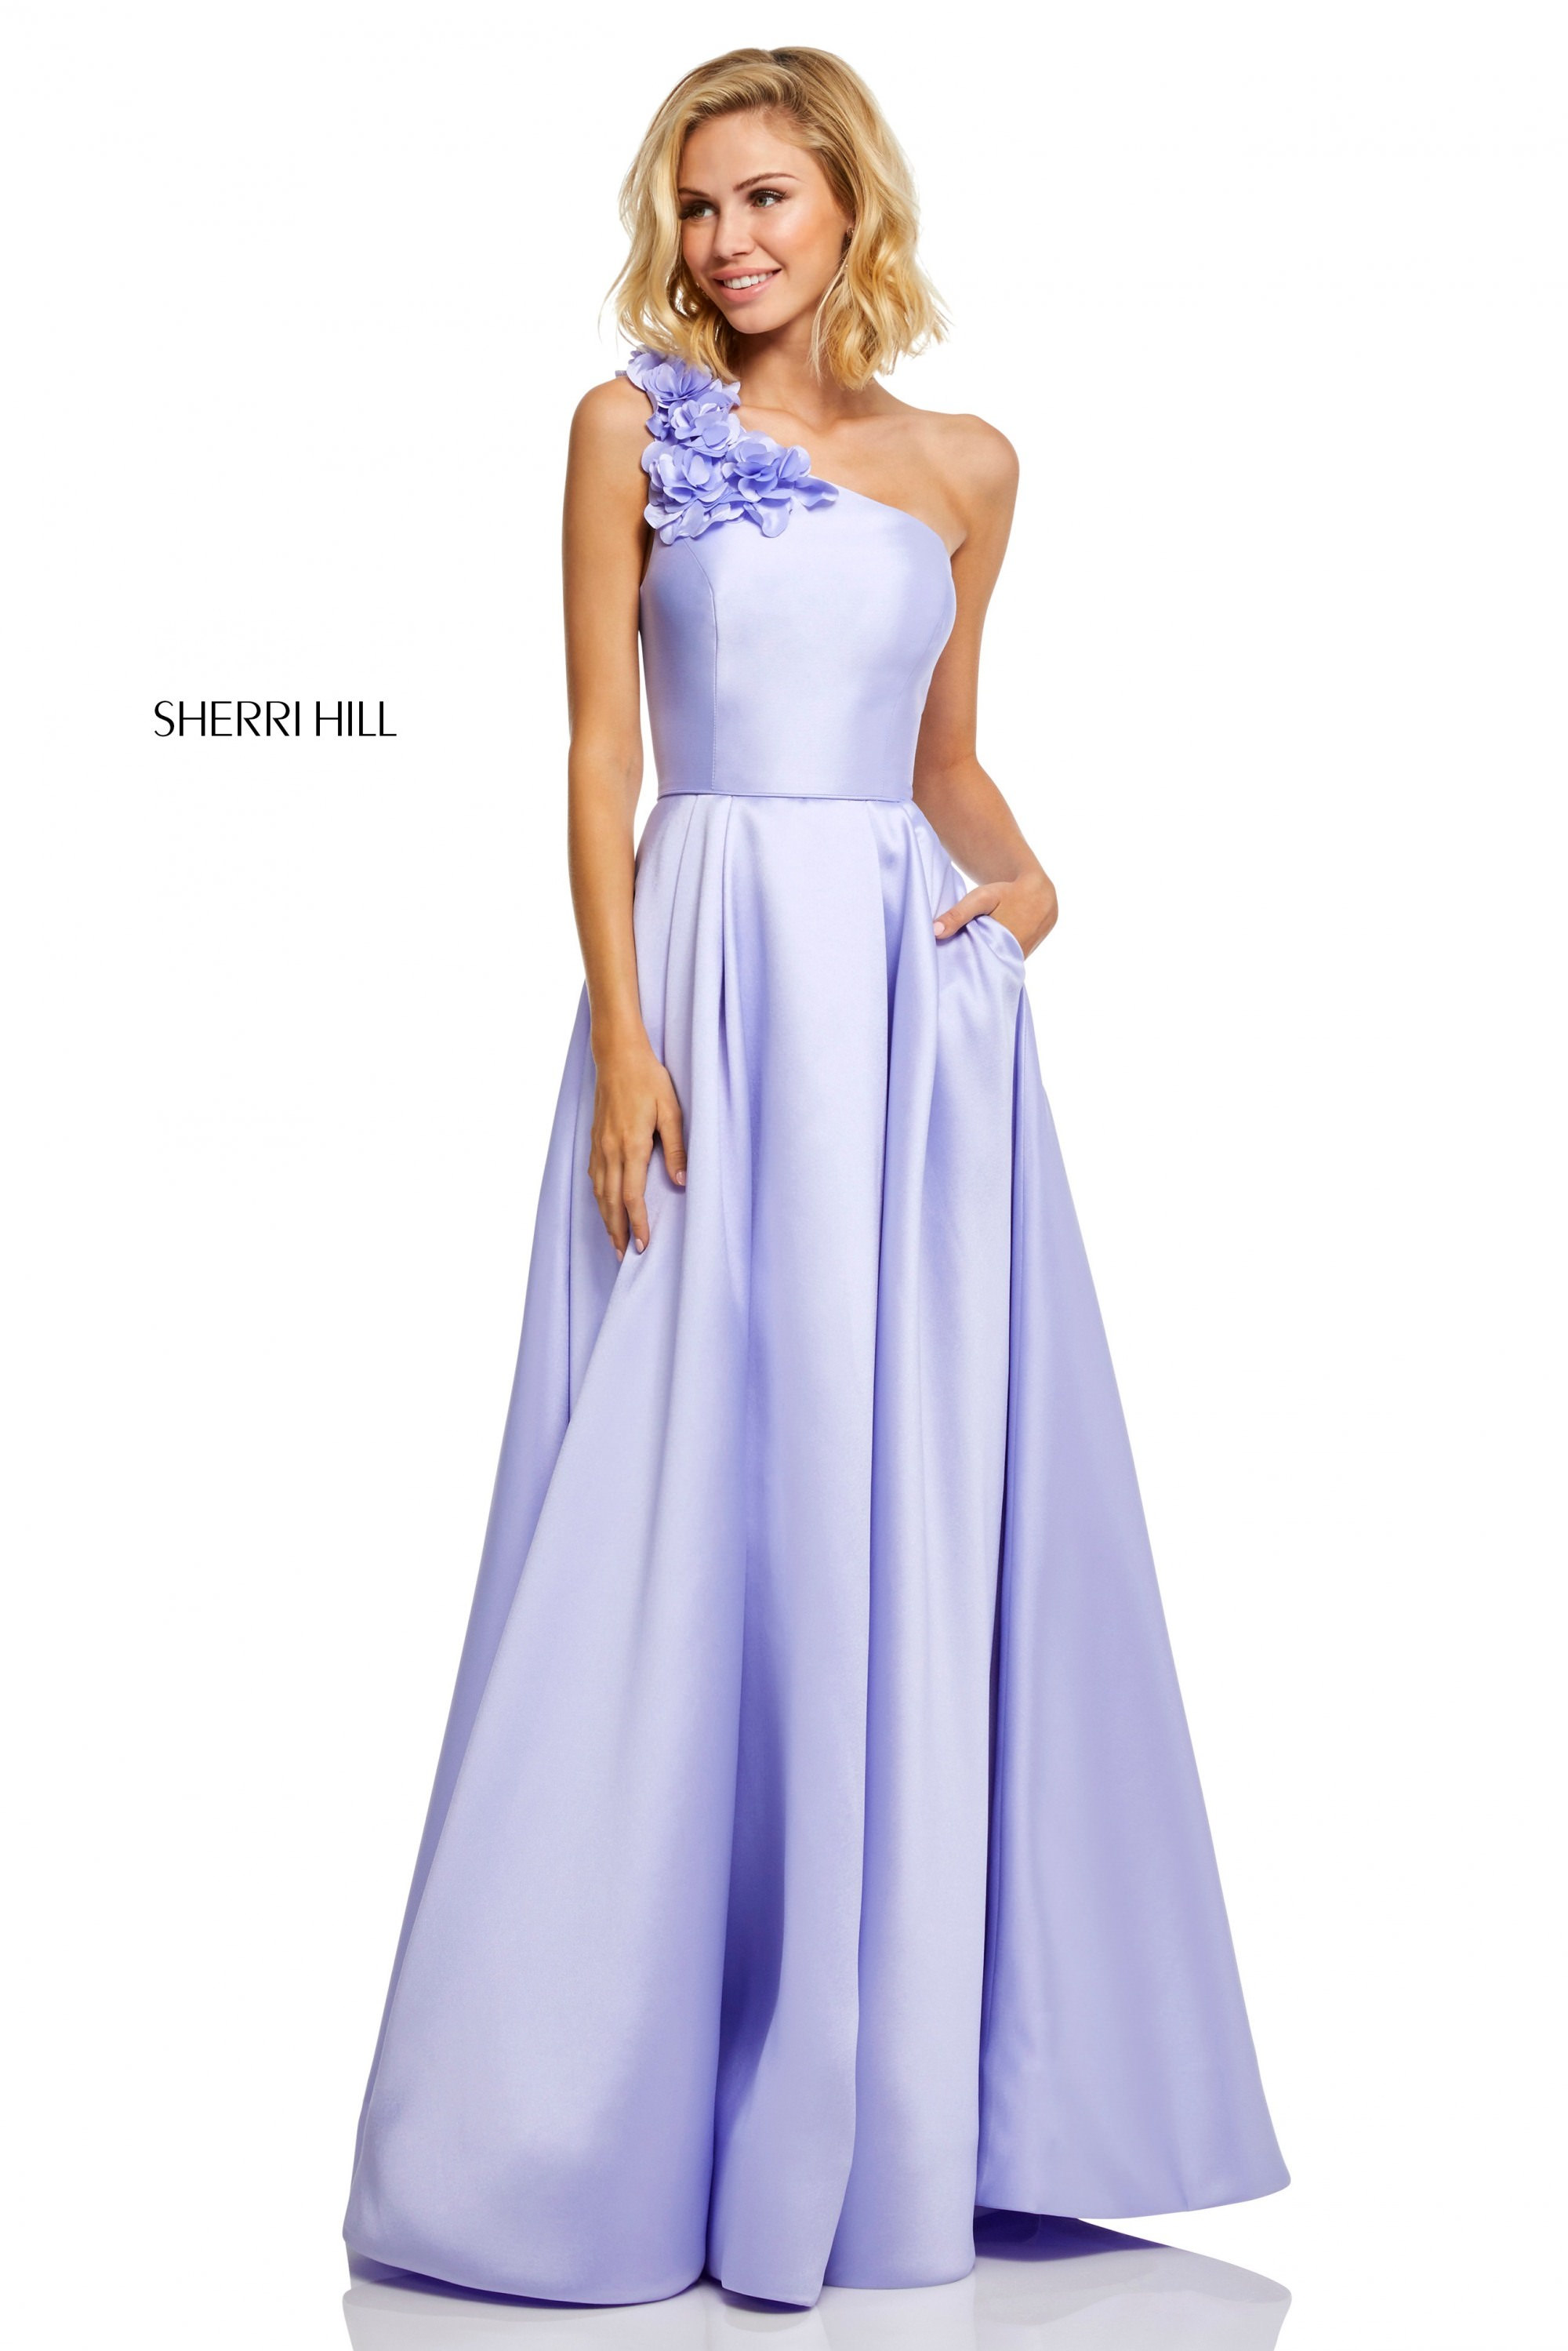 f6aa1b2e4 Sherri Hill 52720 - One Shoulder A-Line with 3D Floral Applique